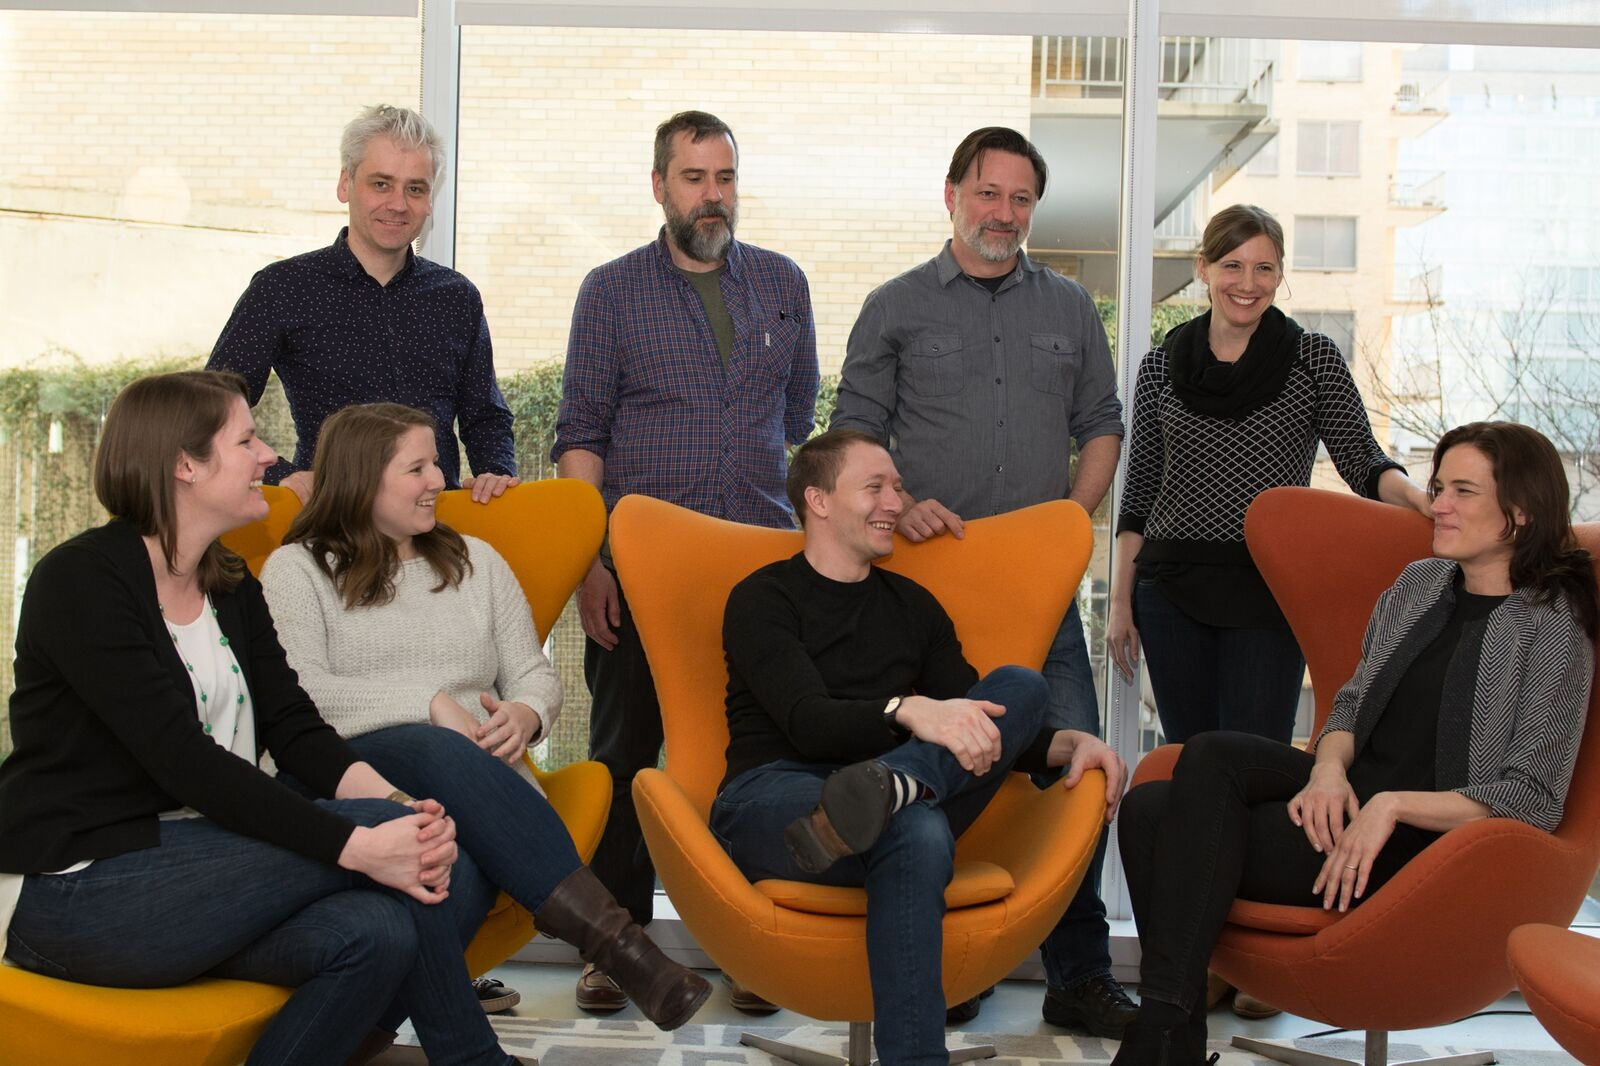 Your 2018 Design Awards Jury. Gear up for a New Year with an all new 2019 Jury!